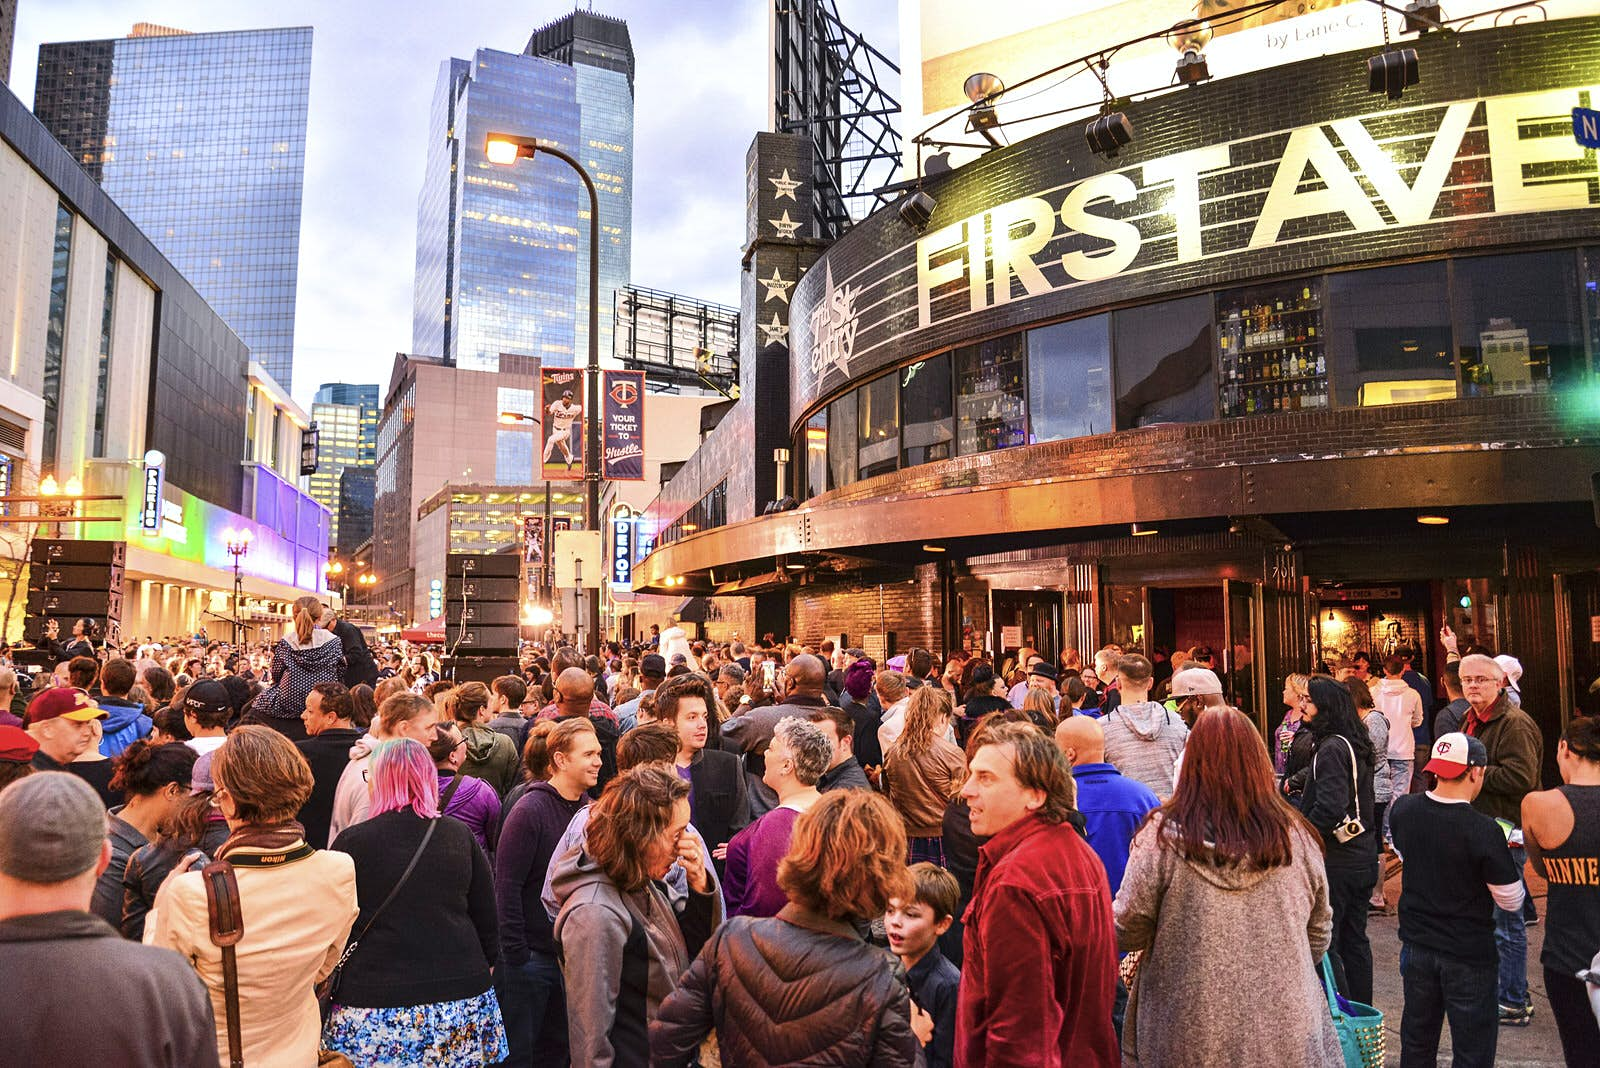 First Avenue Music Venue in Minneapolis: crowds of people stand outside the large venue with 'First Avenue' written in huge gold writing across it